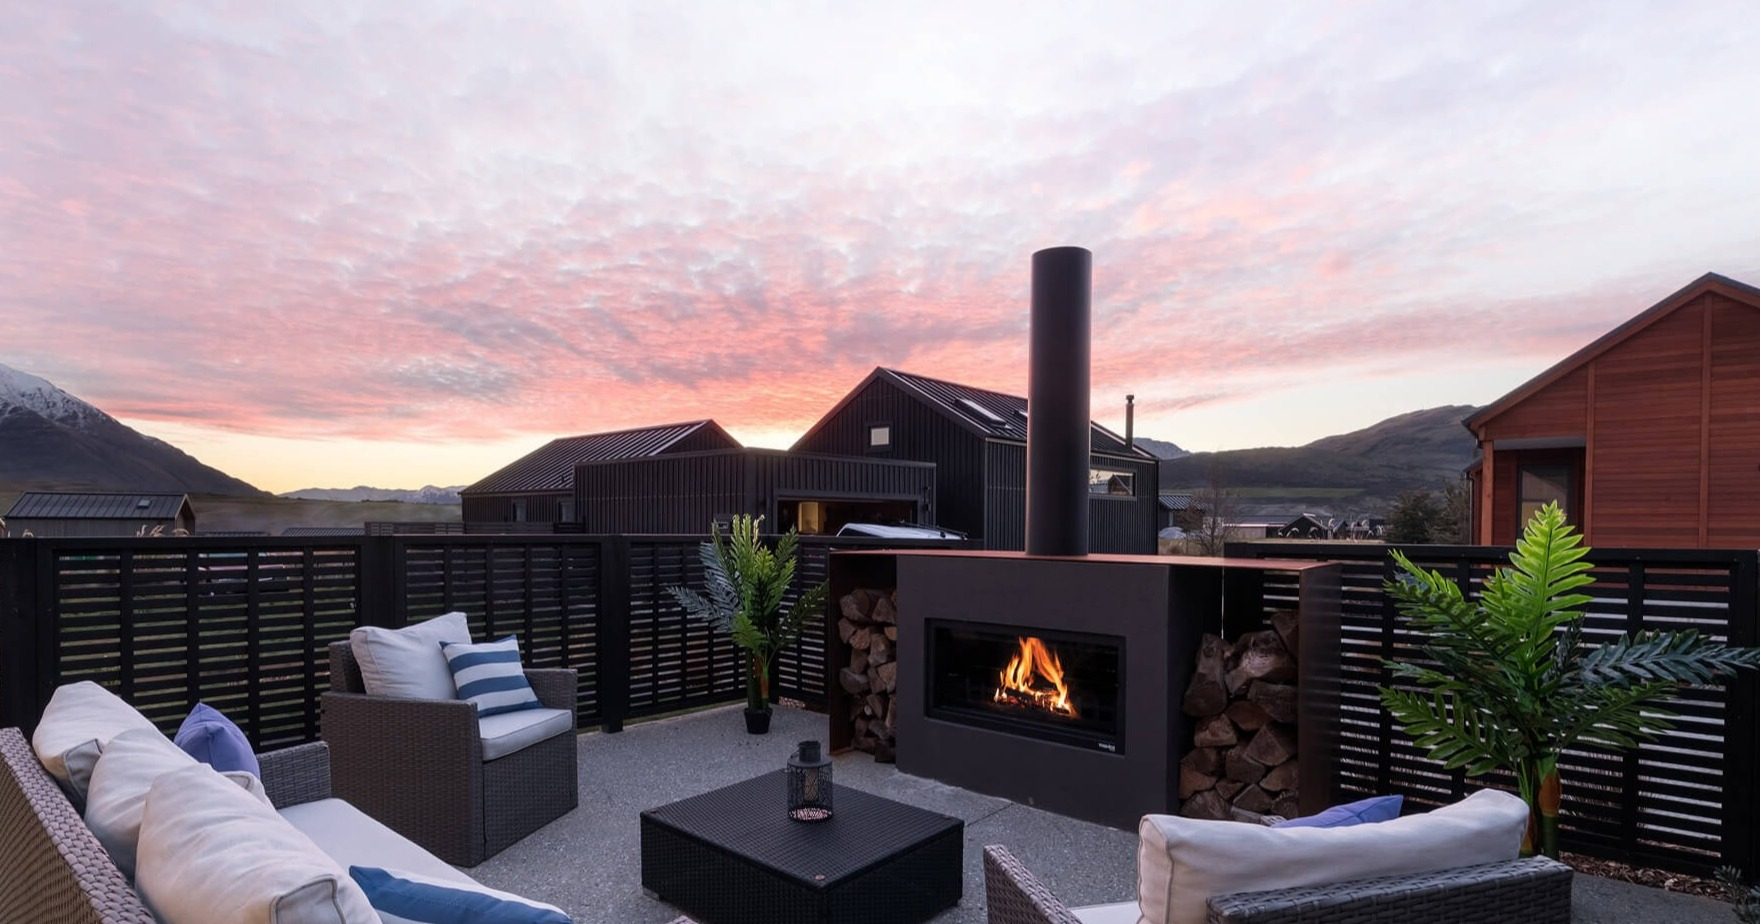 Outdoor entertaining area with fireplace